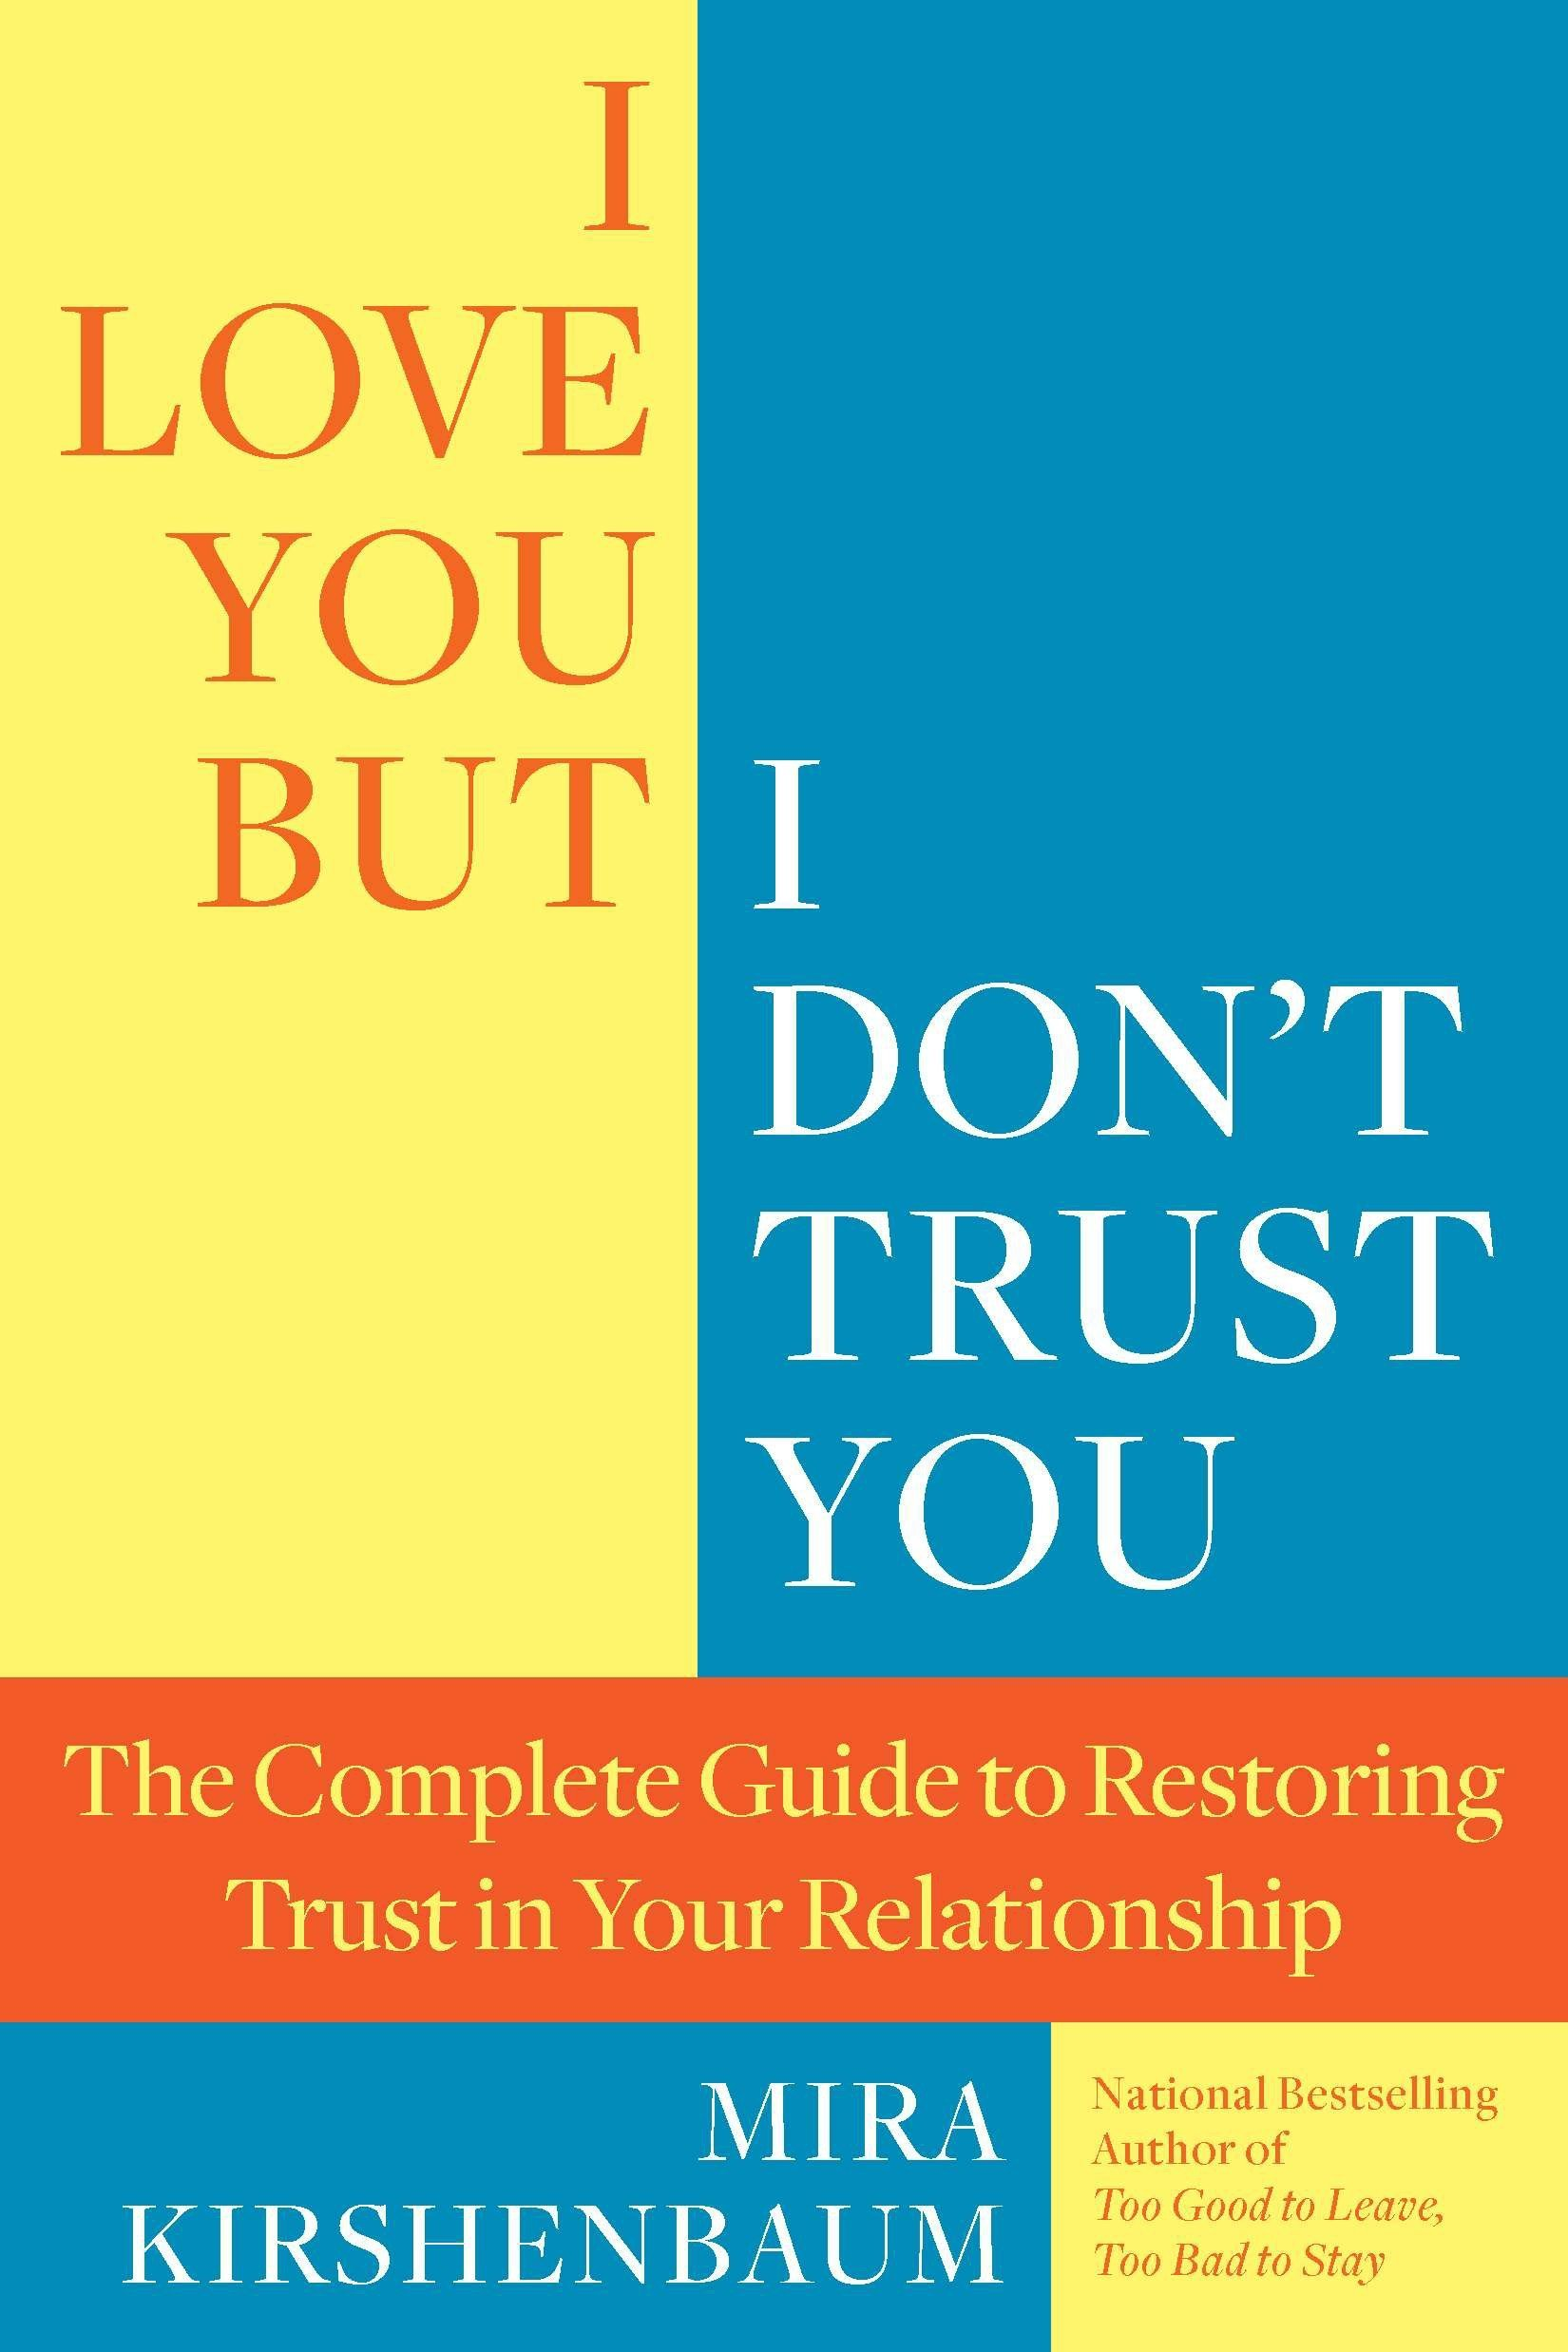 Image OfI Love You But I Don't Trust You: The Complete Guide To Restoring Trust In Your Relationship